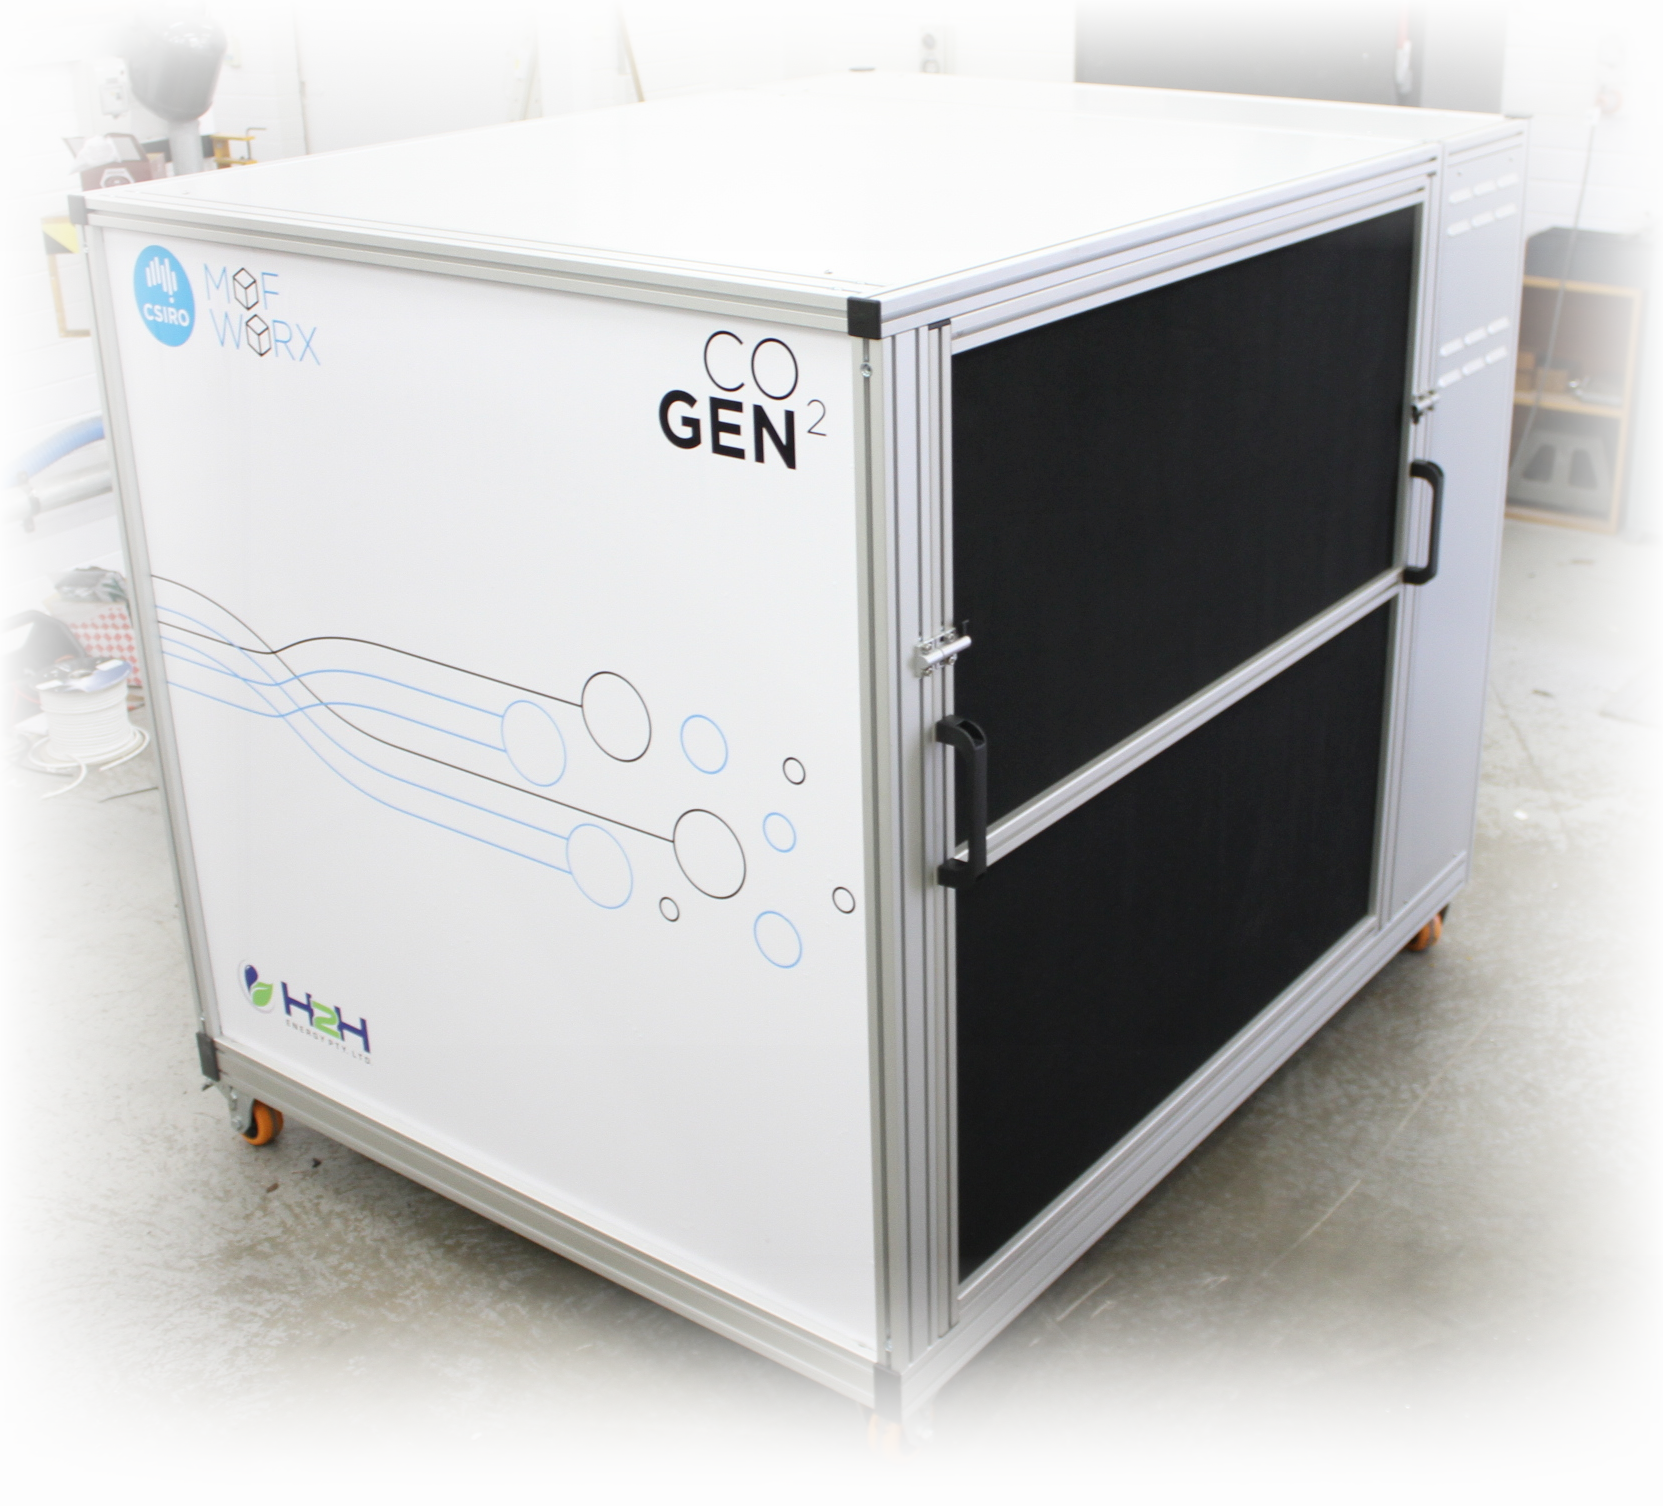 A prototype CO2 capture and storage device, developed by CSIRO